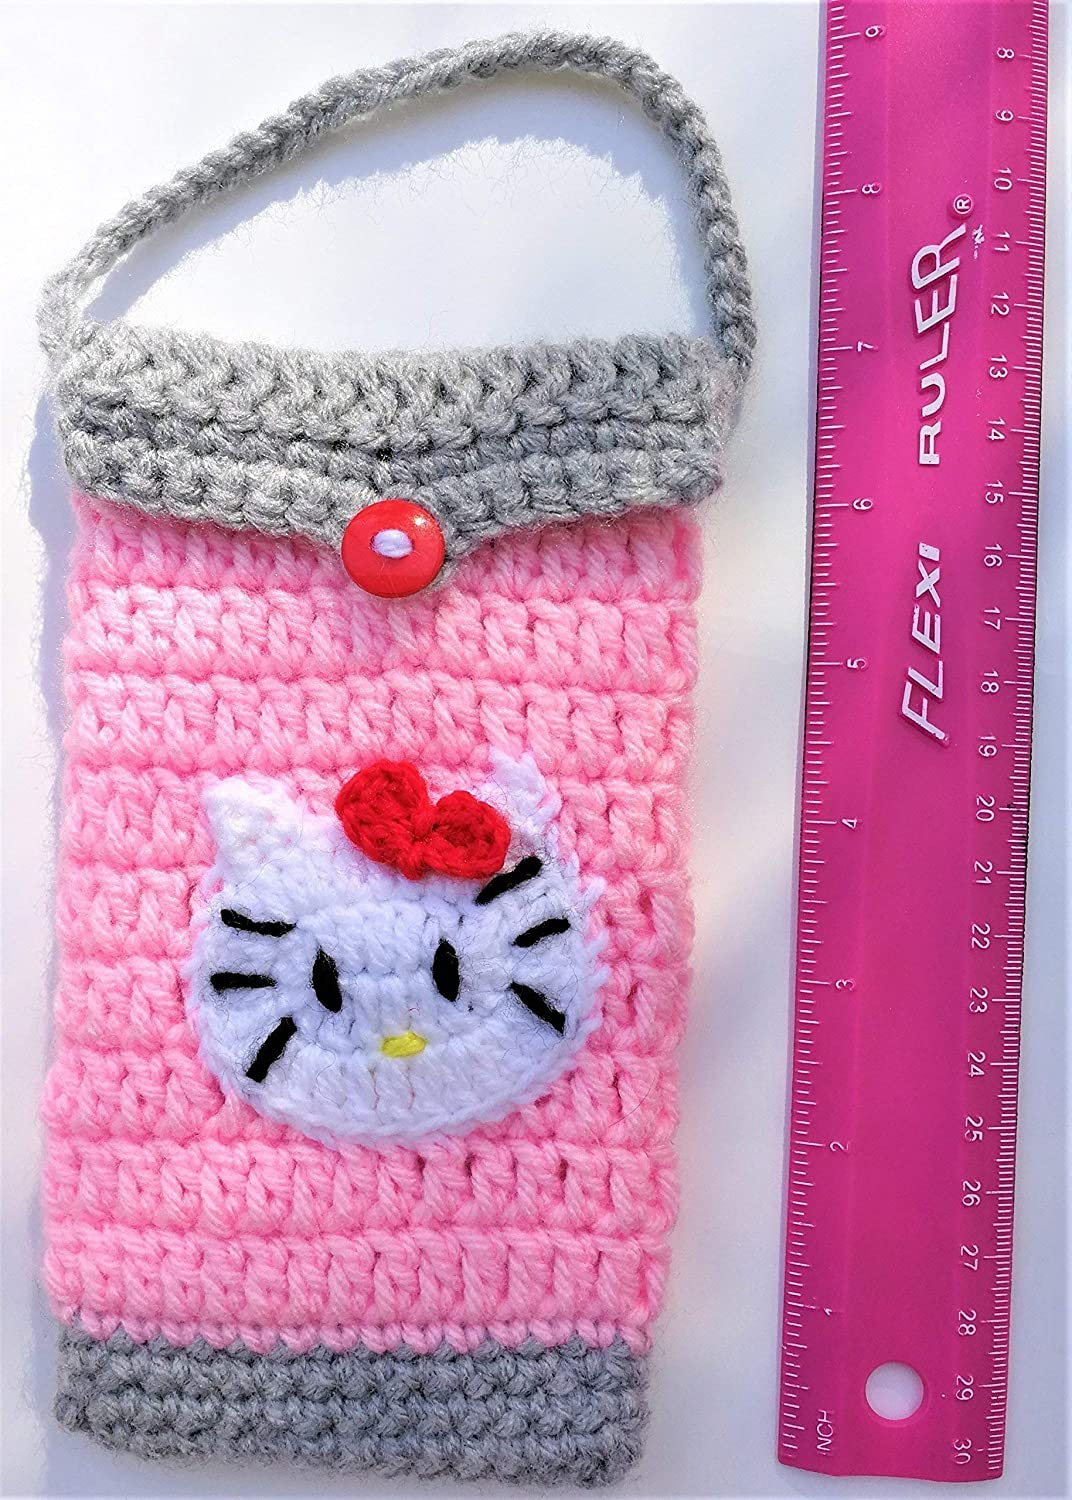 Cute Hello Kitty IPhone Case Handmade Birthday Gifts For Adult Android Phone Cell Girl Present Bag Convenient